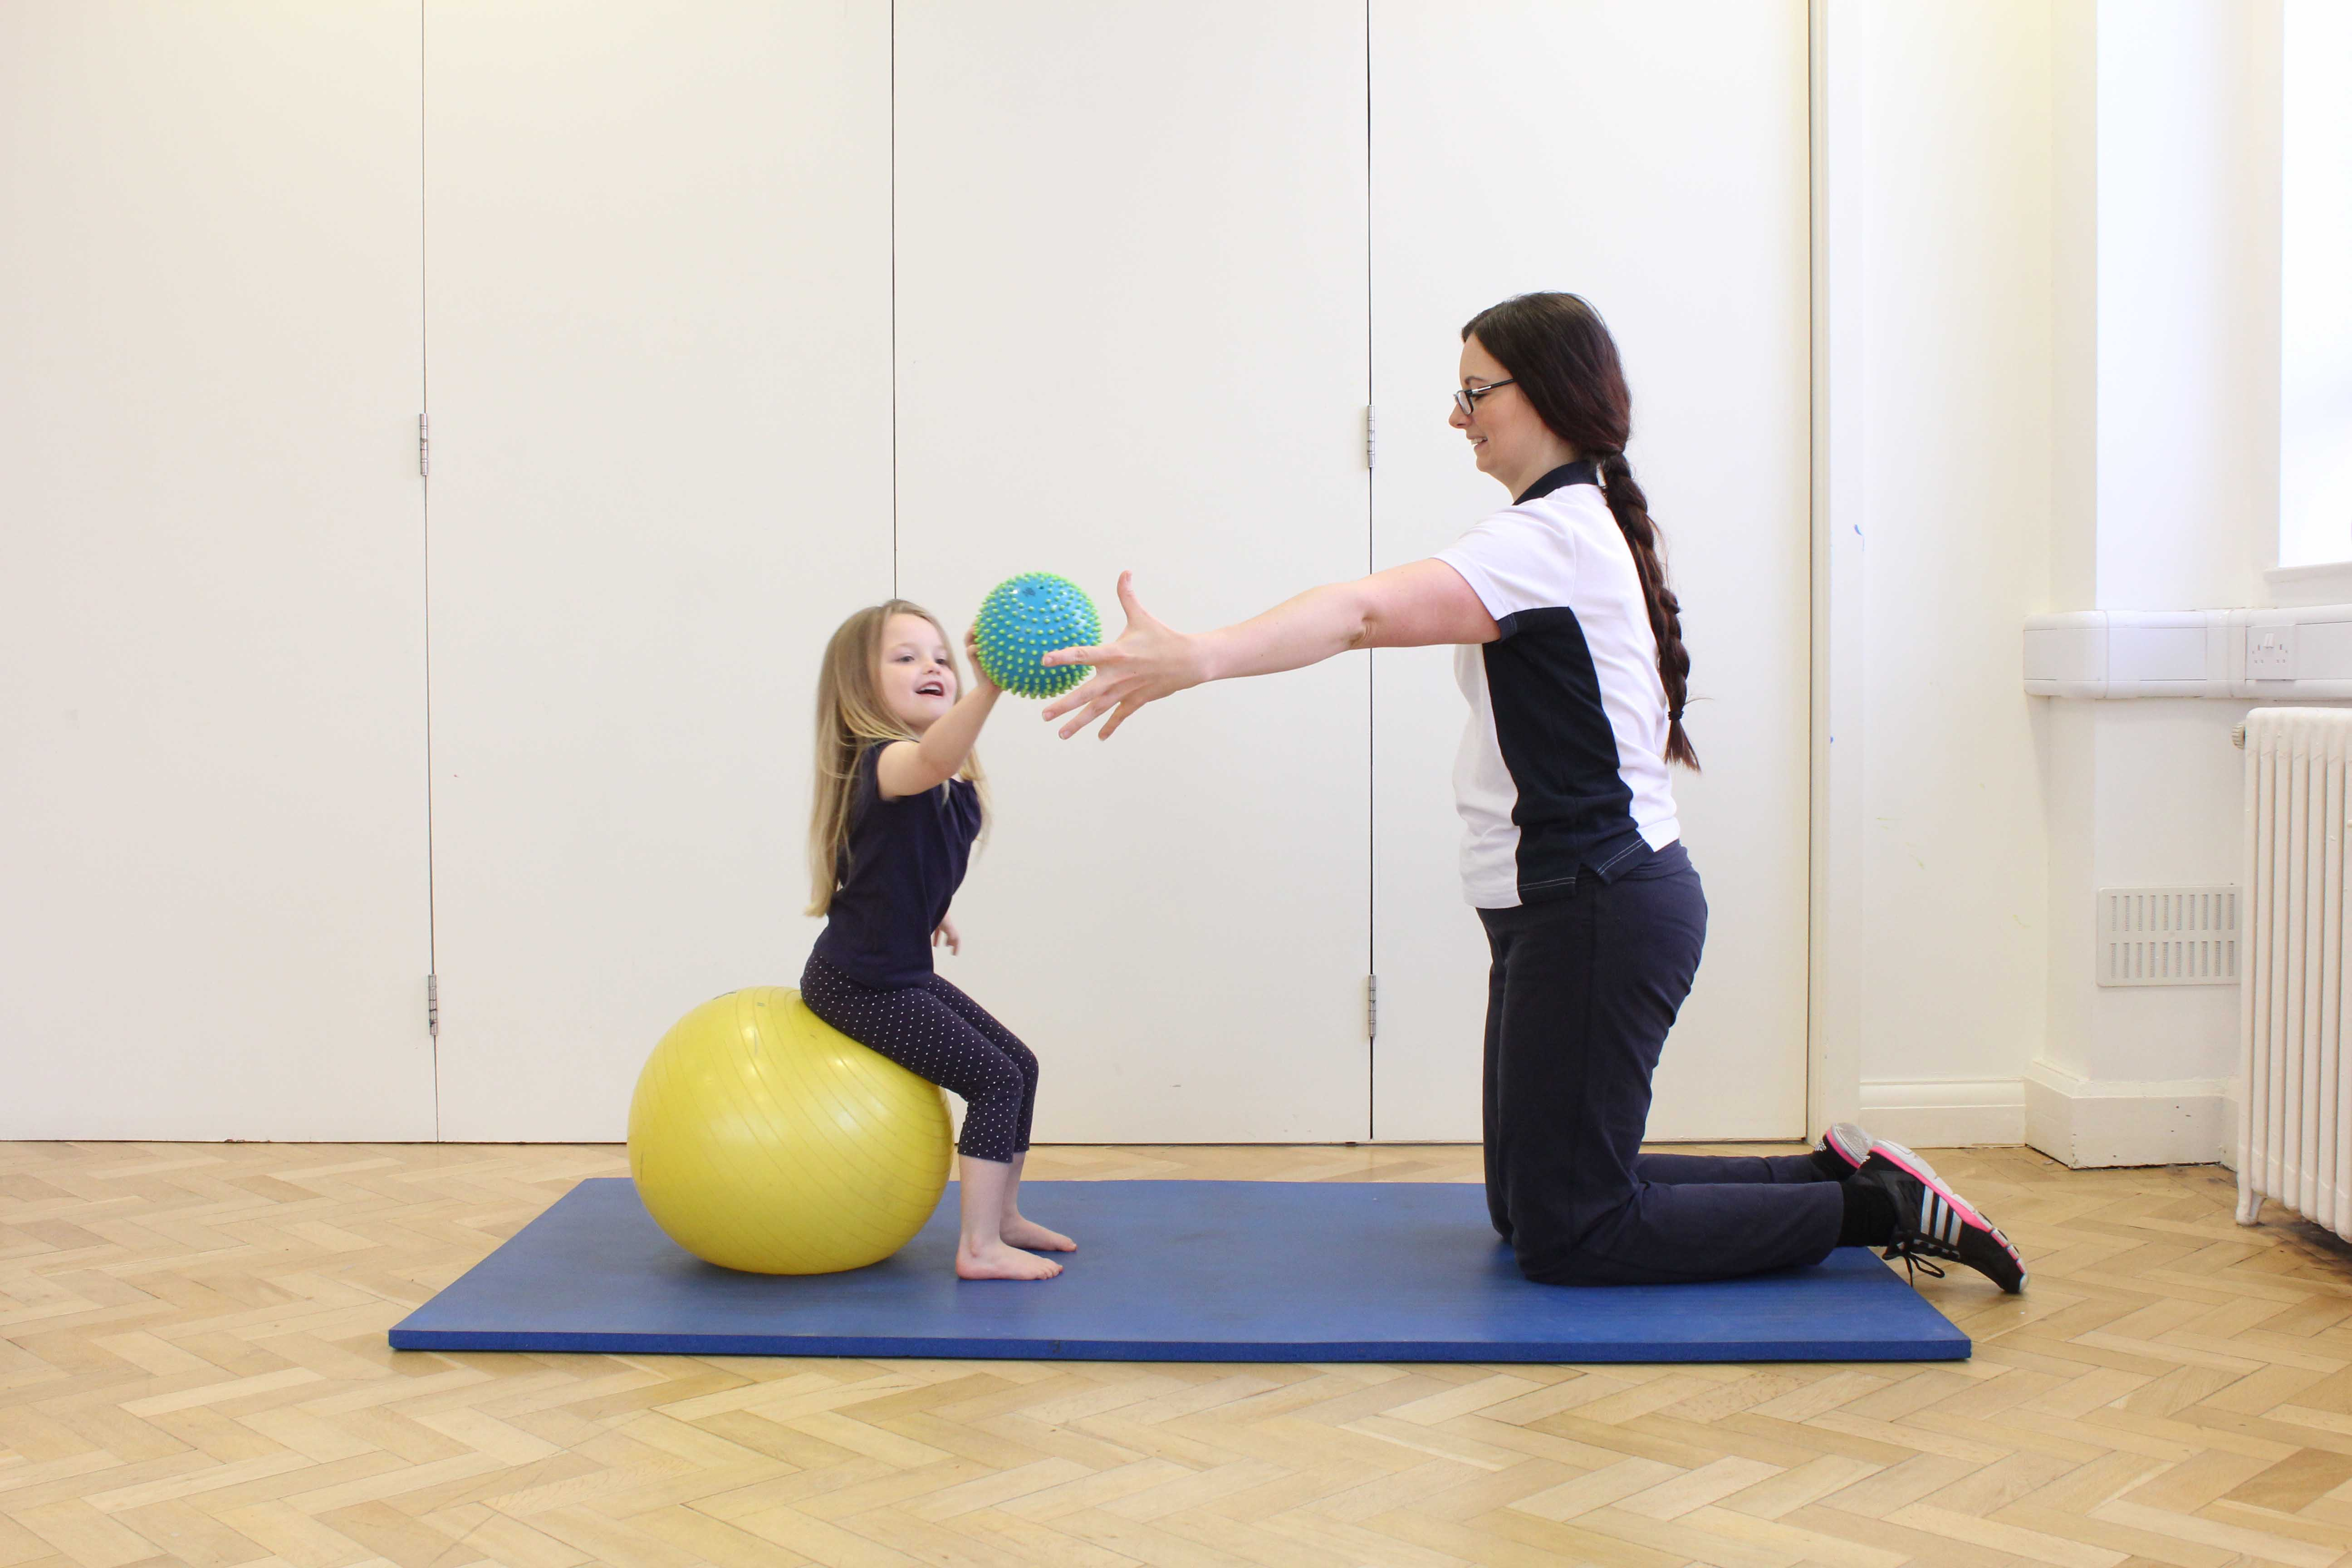 Physiotherapist encouraging increased range of movement with a reaching game.